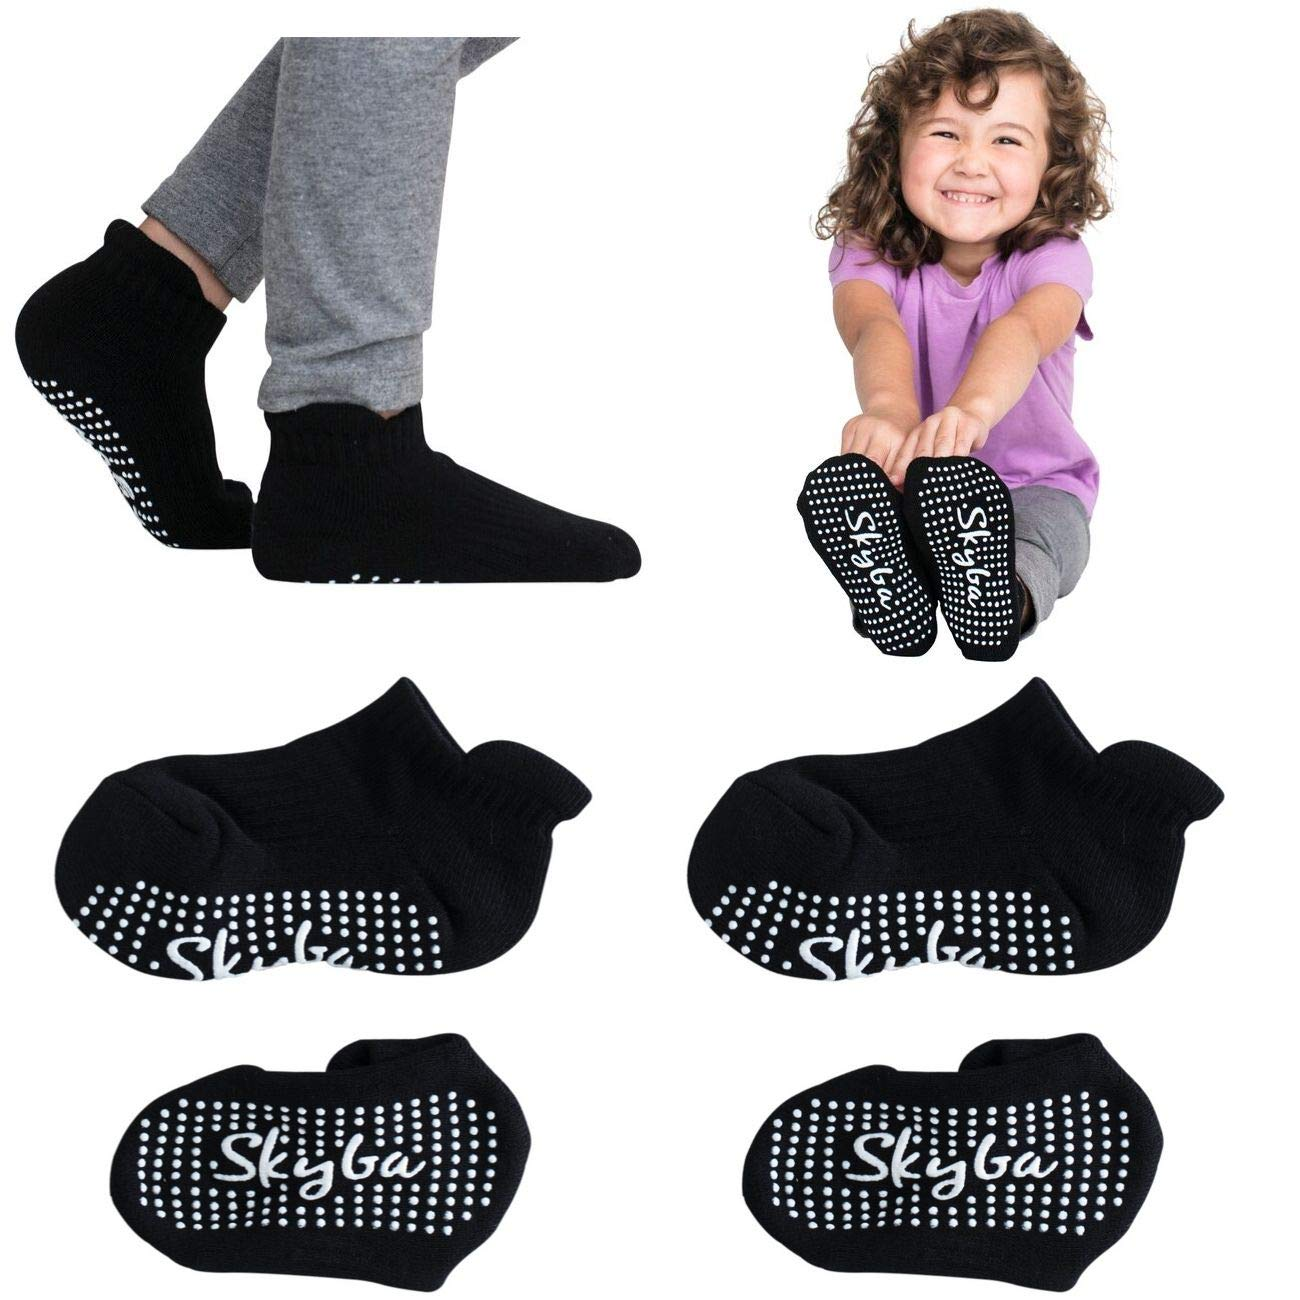 Toddlers Skyba Non Slip Socks Anti Skid Grip for Boys Children Girls Kids